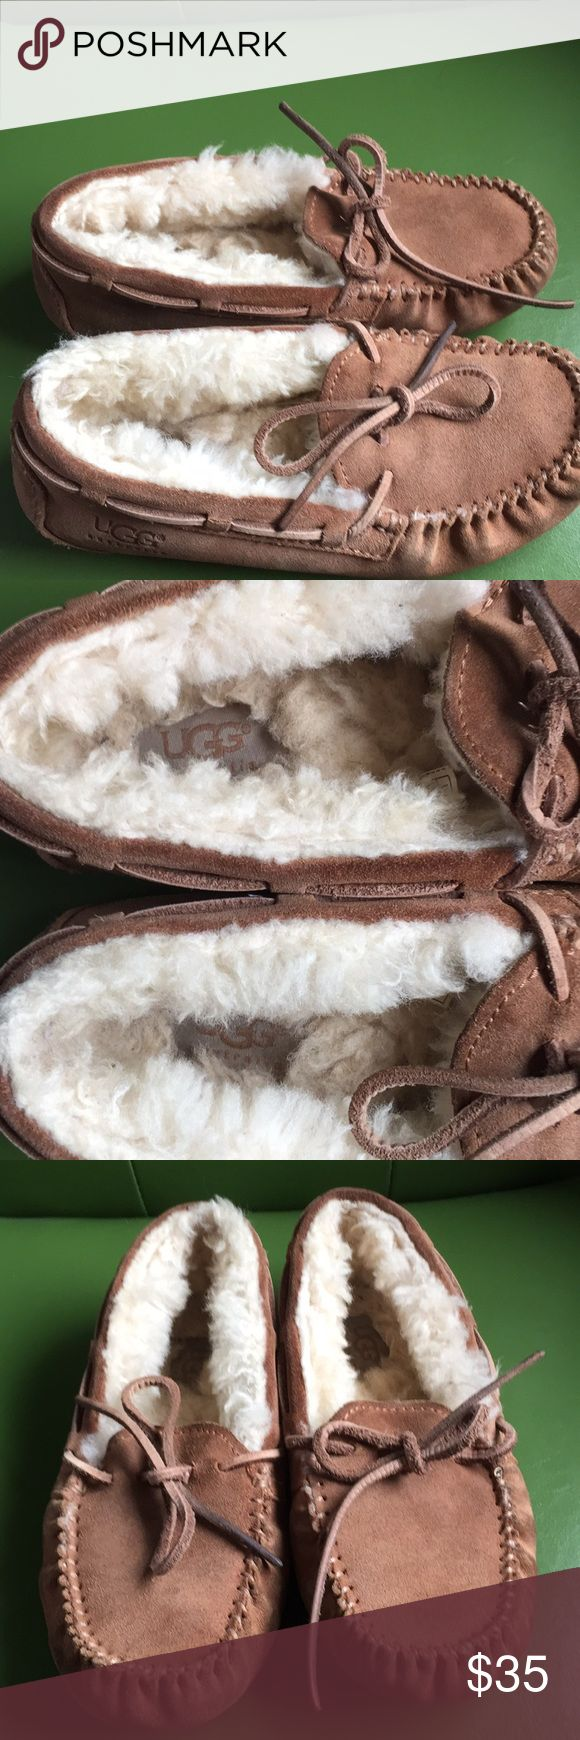 Ugg Shearling Slippers Size 1 Ugg Shearling Slippers,Size one, gently worn, traction sole, pictures are part of the description. UGG Shoes Slippers